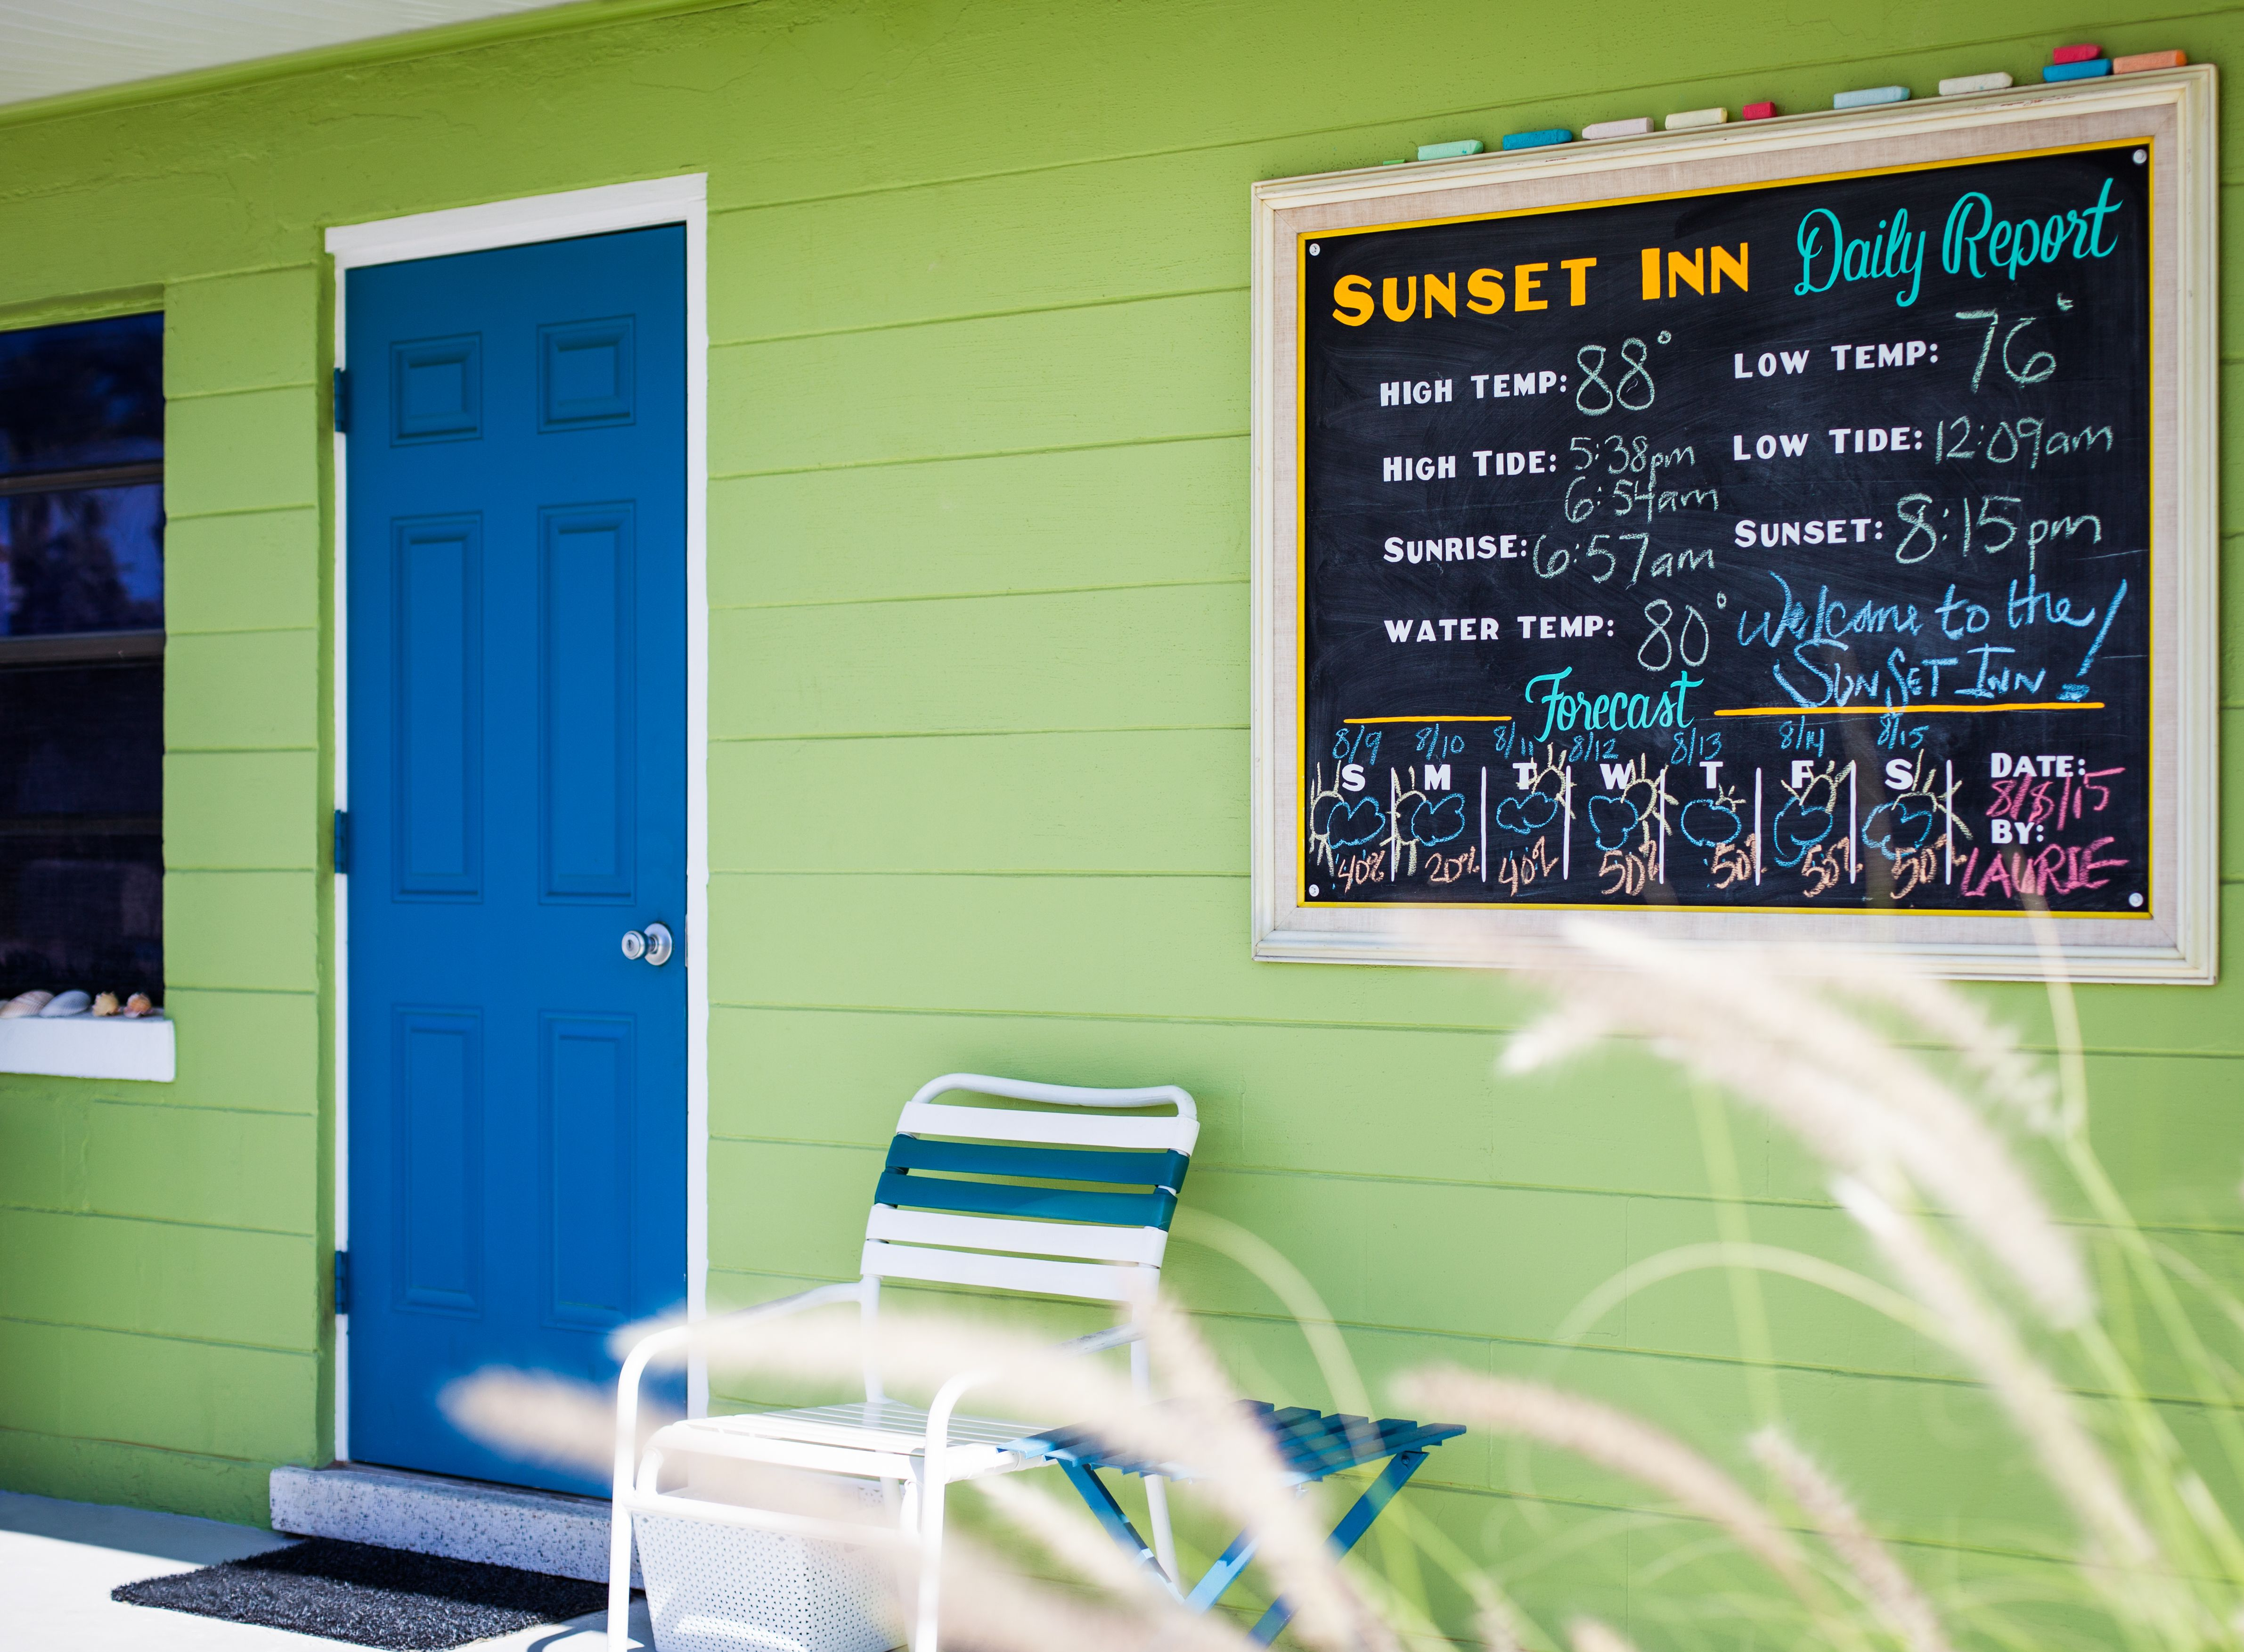 Sunset Inn Cottages Daily Report Treasure Island Madeira Beach Great Places